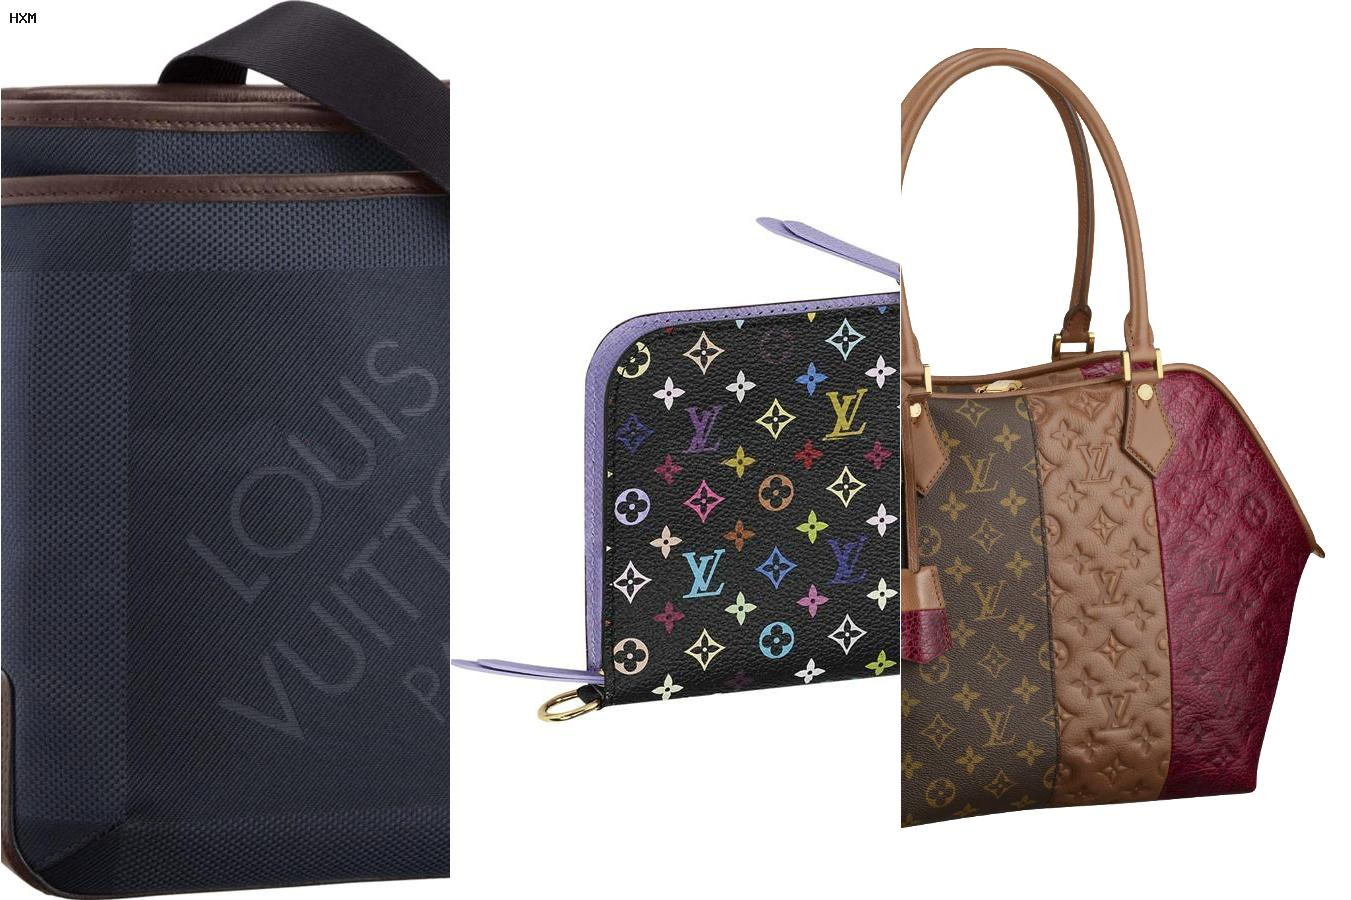 louis vuitton neverfull bag for sale